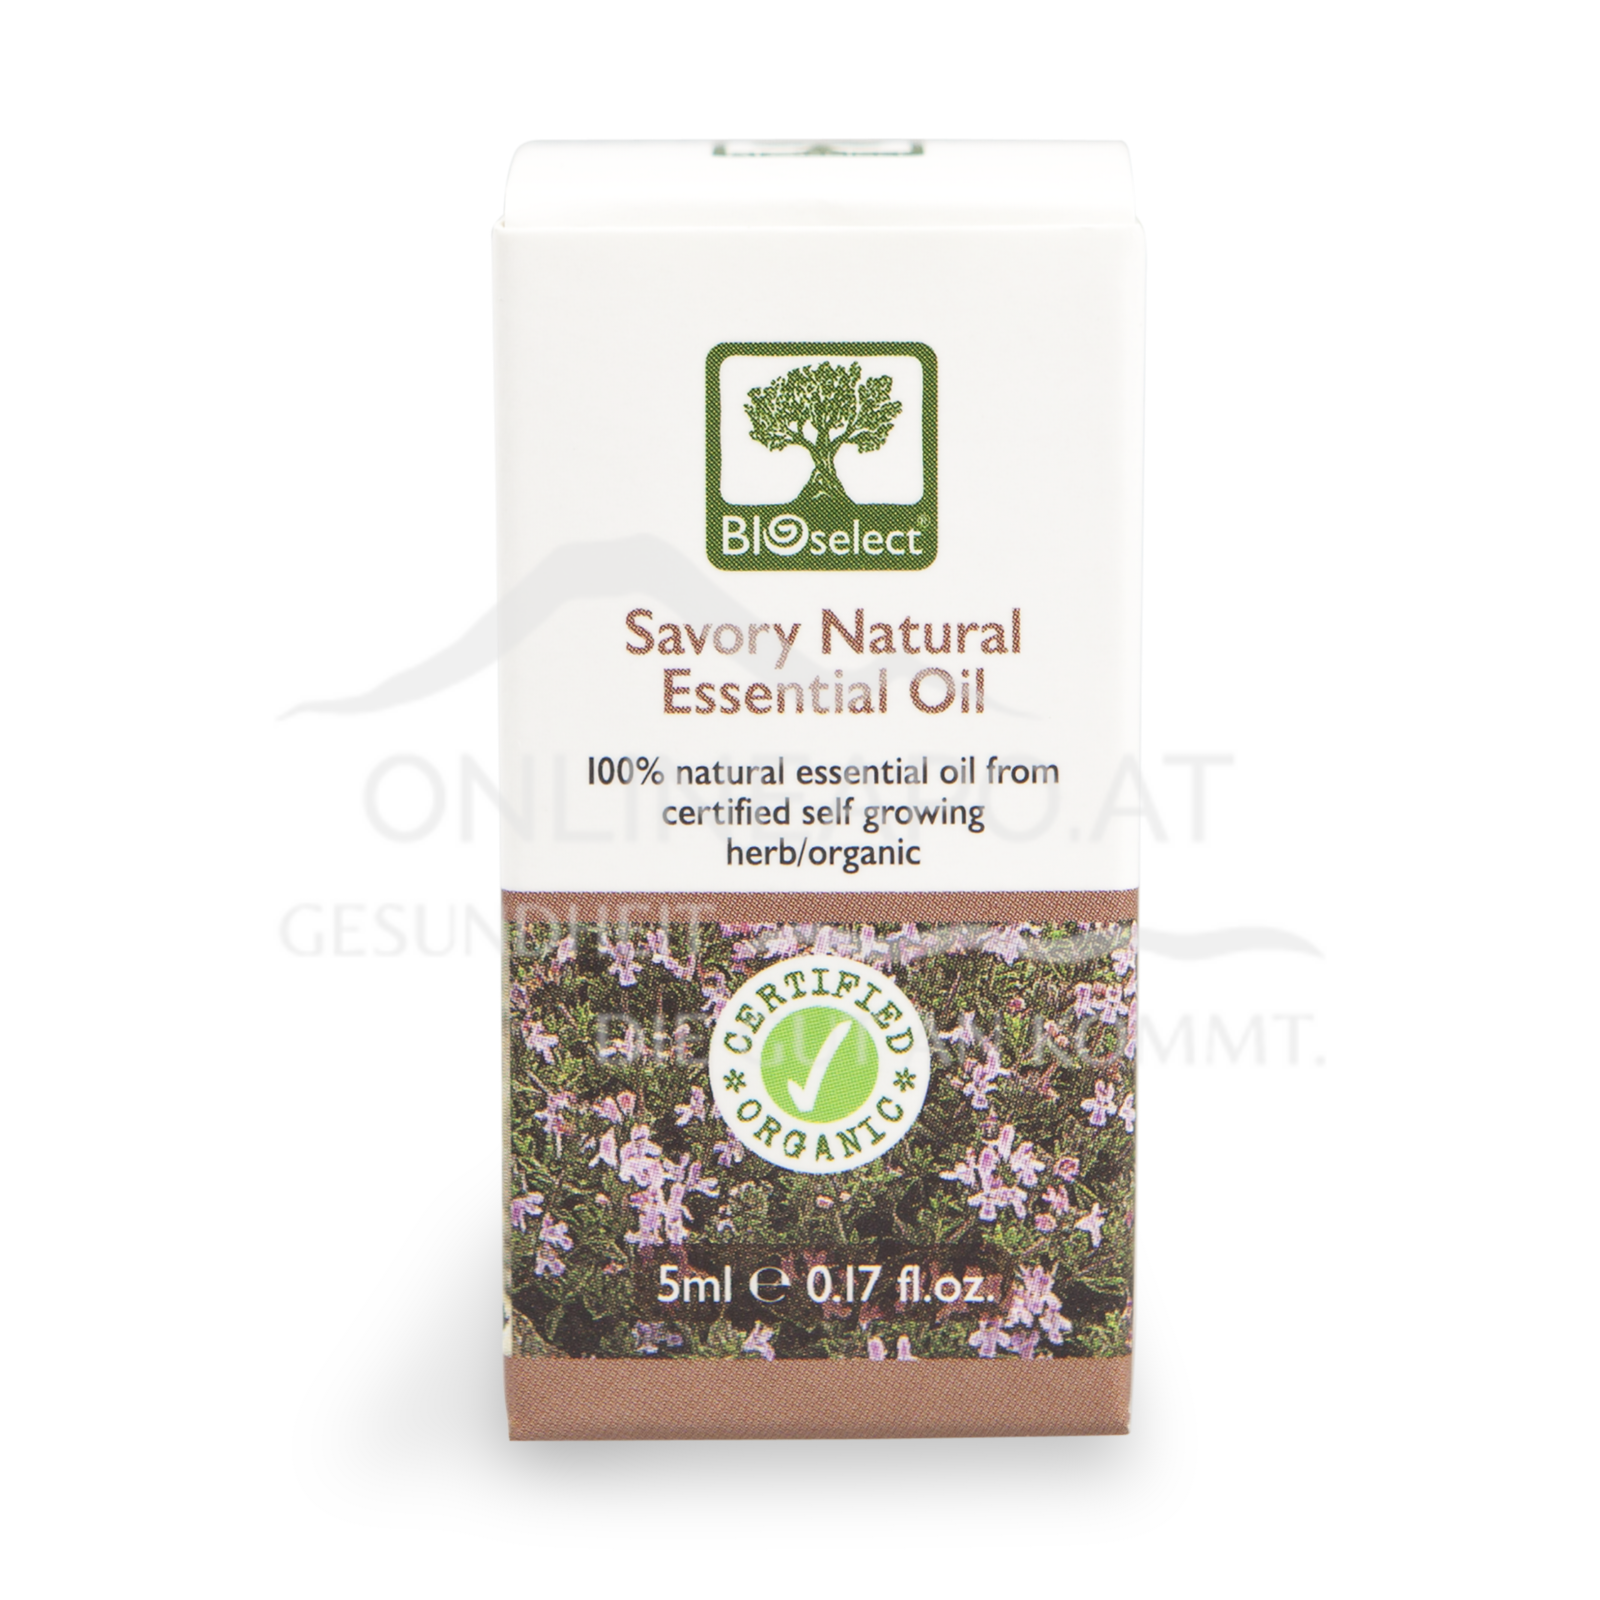 Bioselect Savory Natural Essential Oil Certified Organic